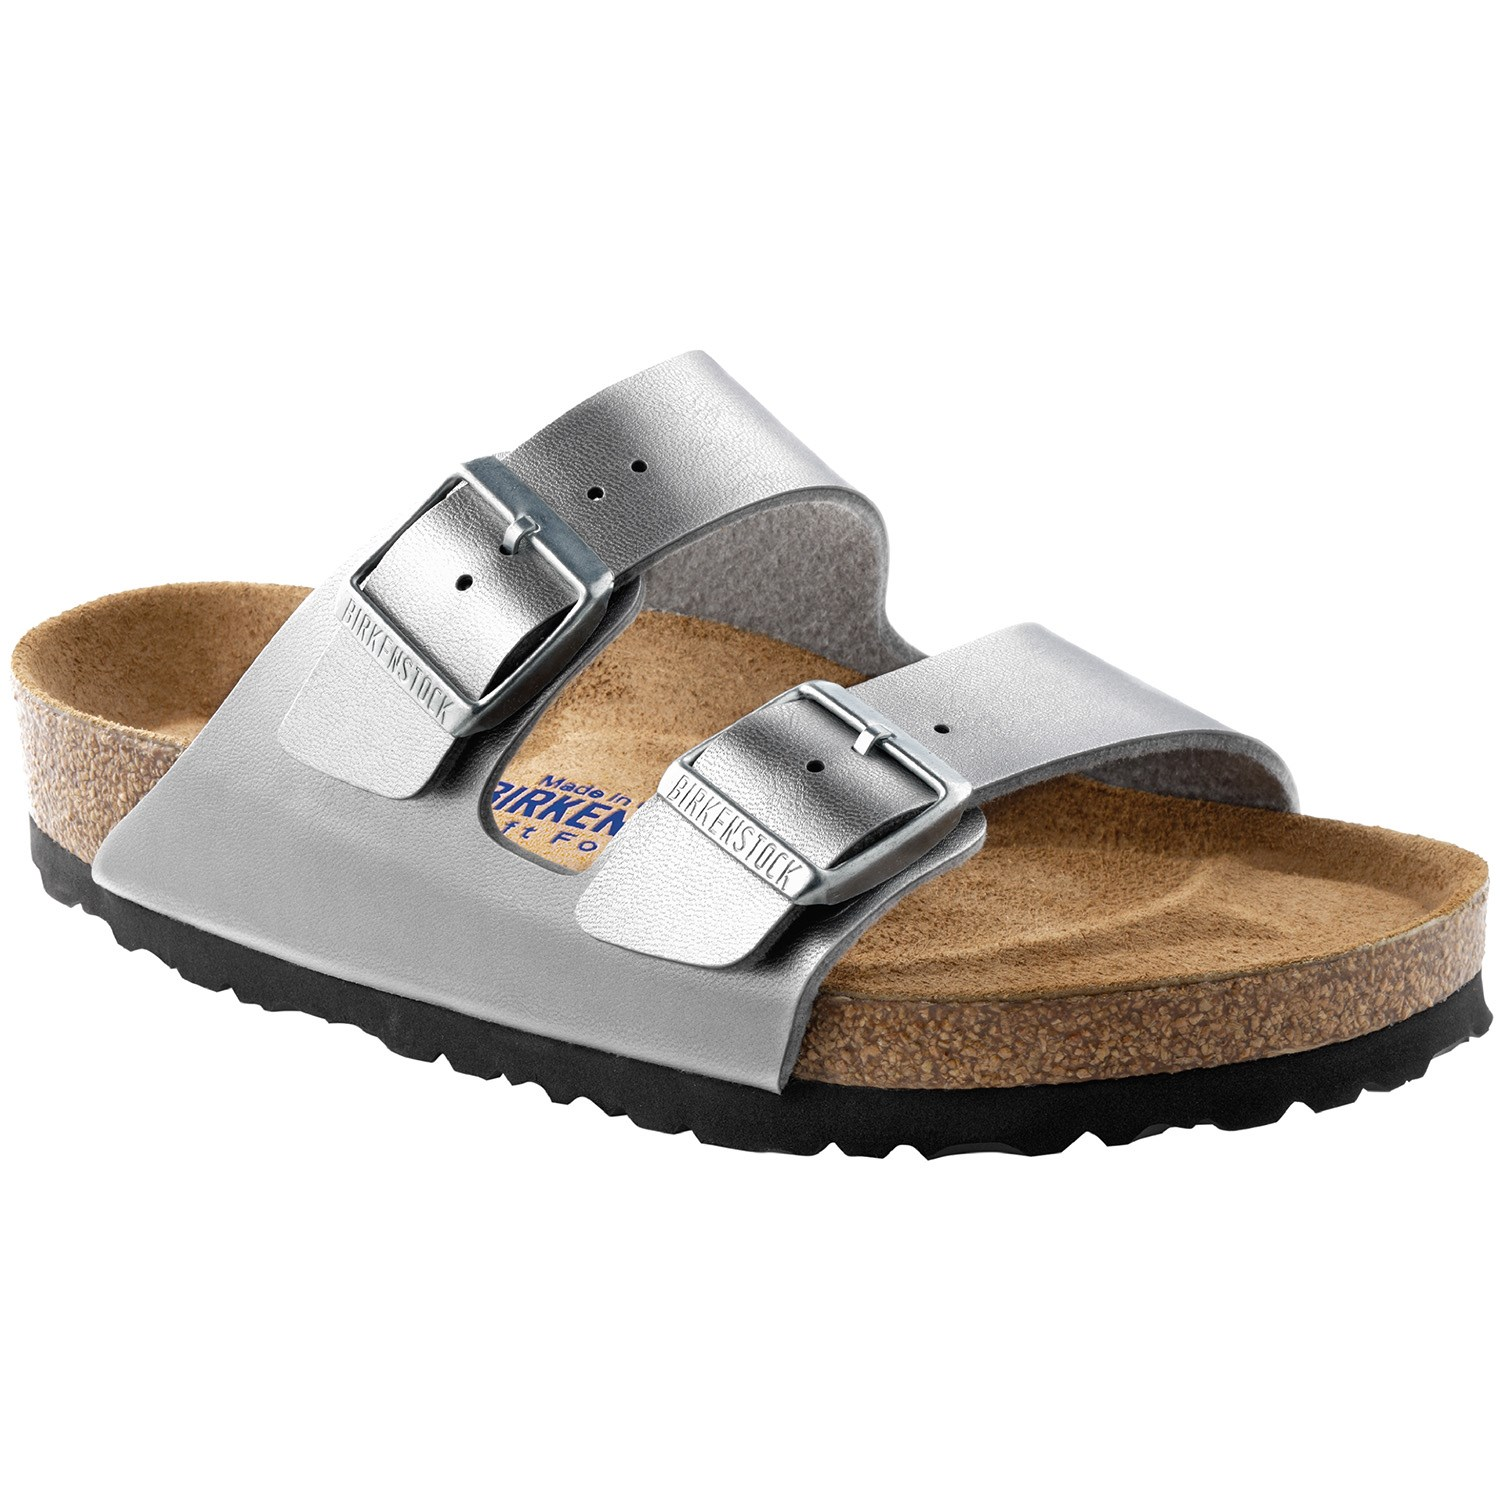 Lastest Sandals Women Birkenstock Women S Sandals Arizona Leather Whit